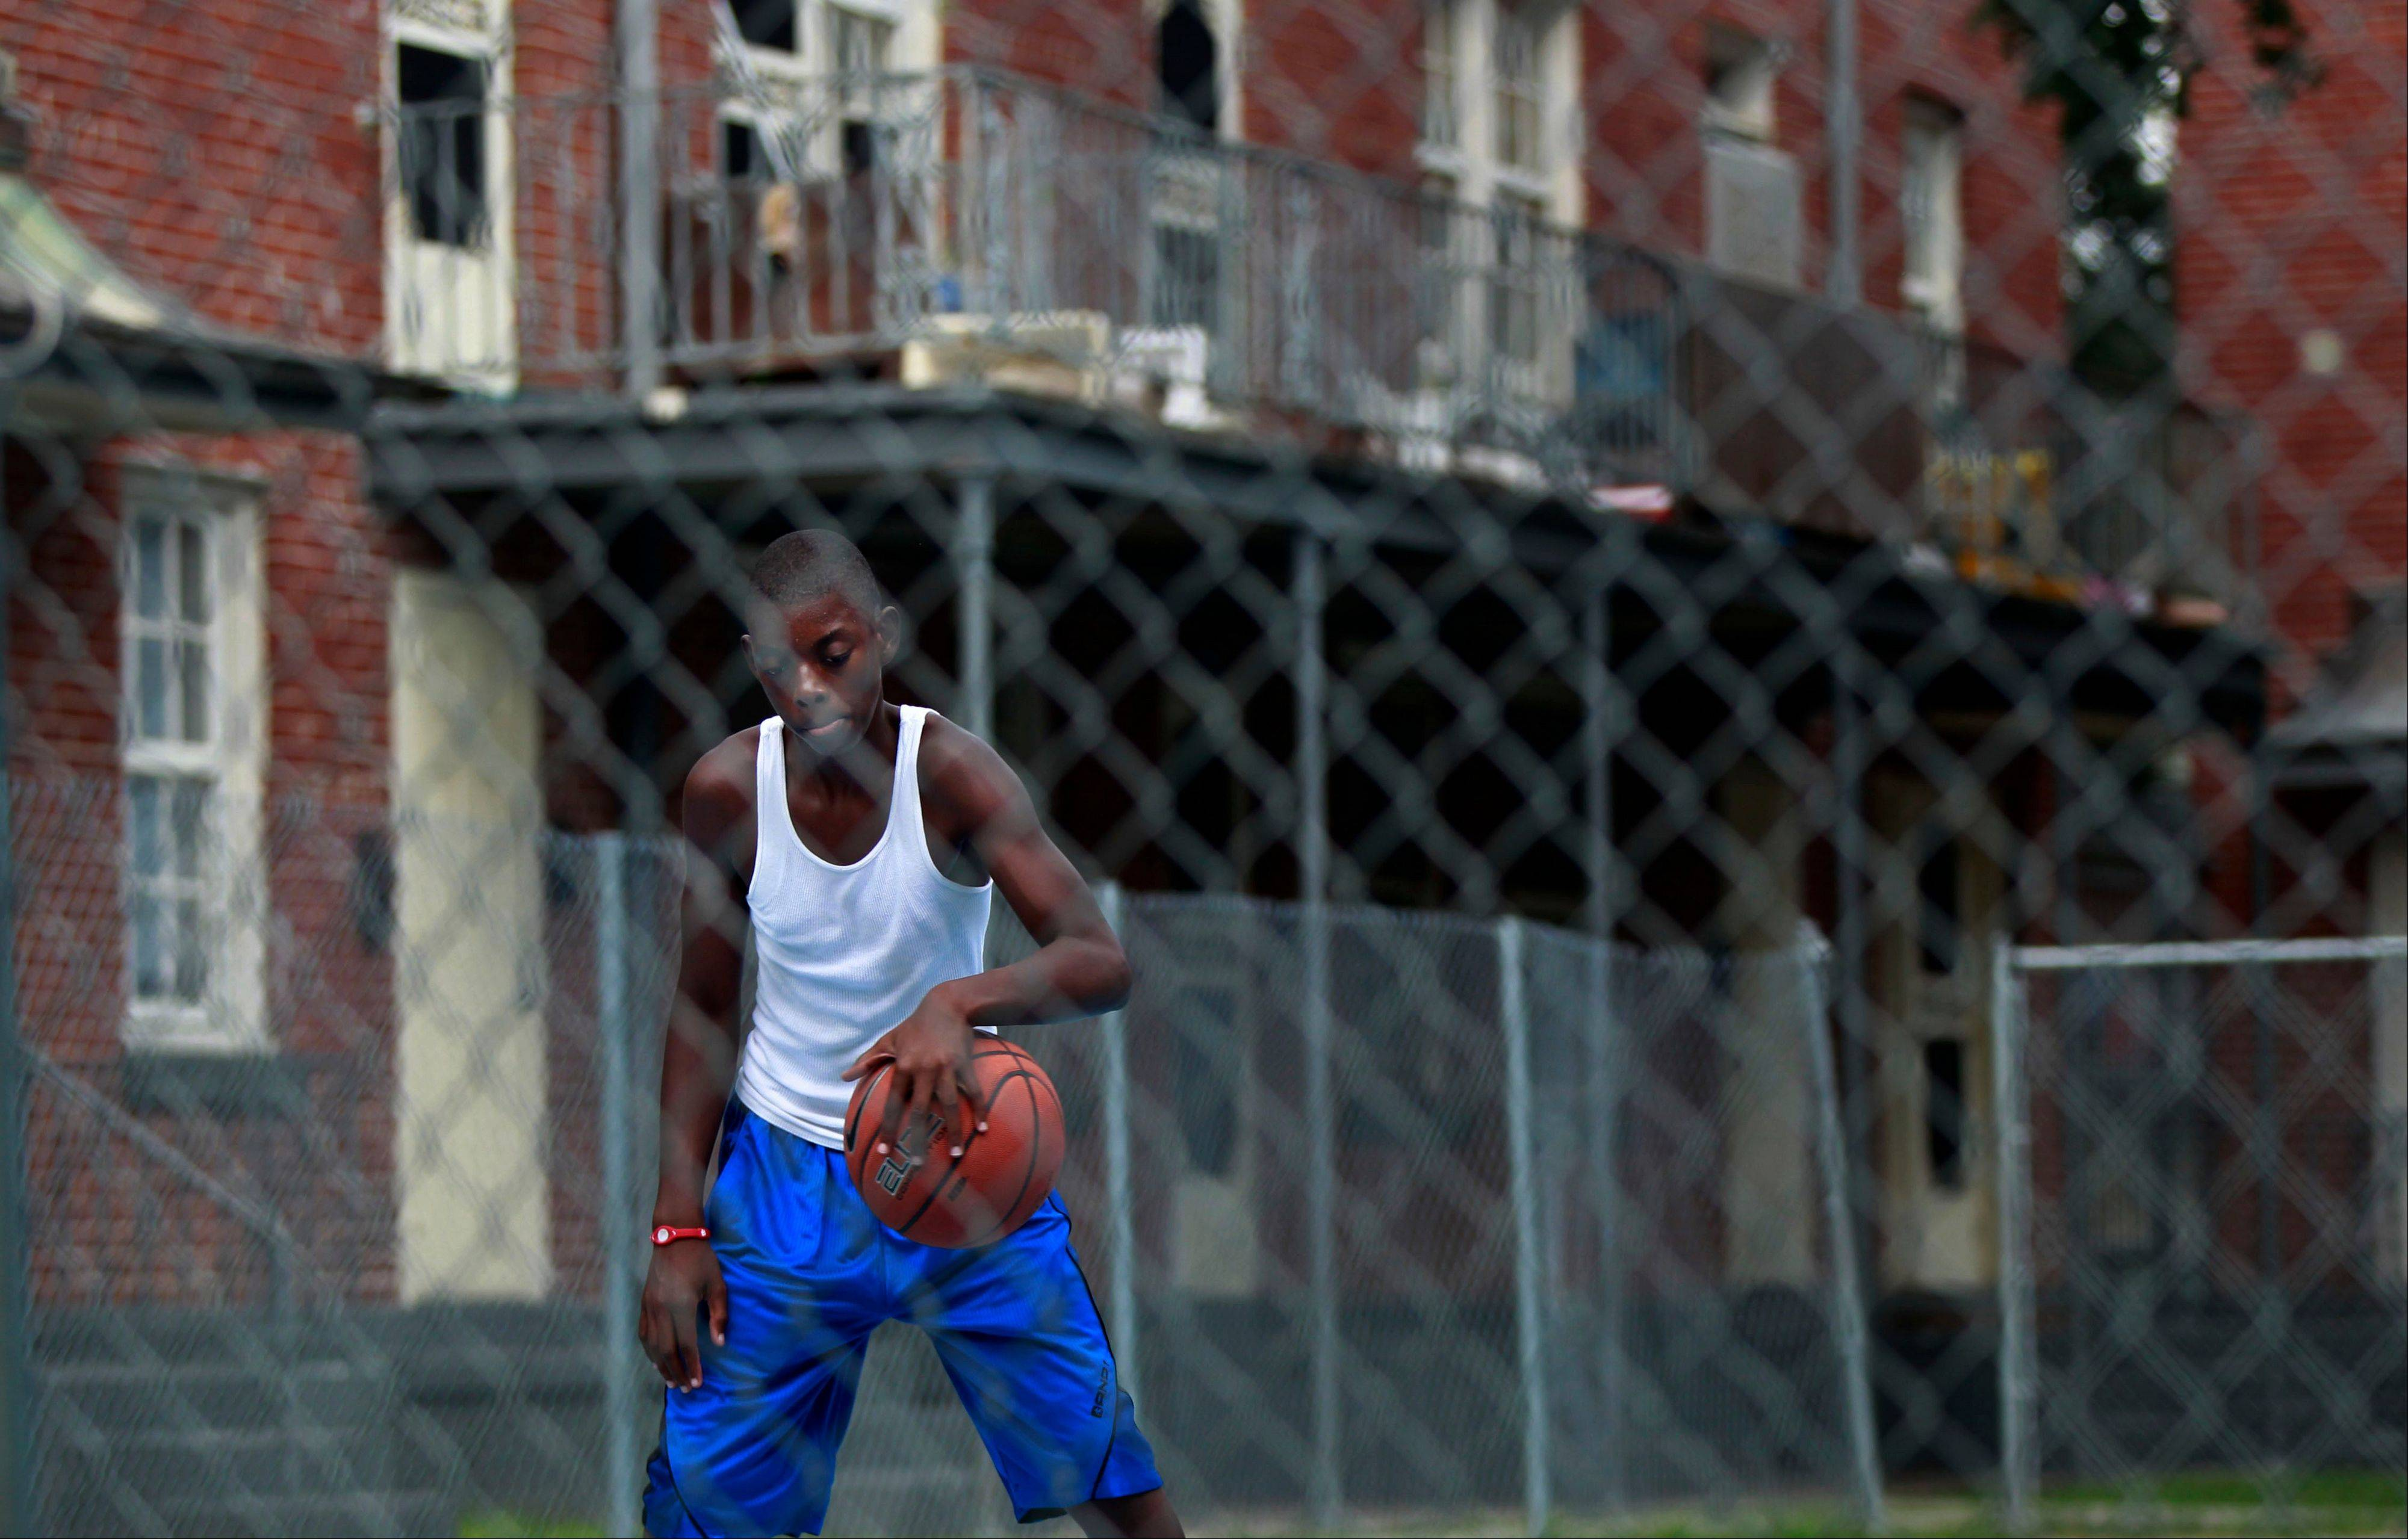 Johnny Anderson, 12, plays basketball in the Iberville housing projects, which are slated to be torn down.